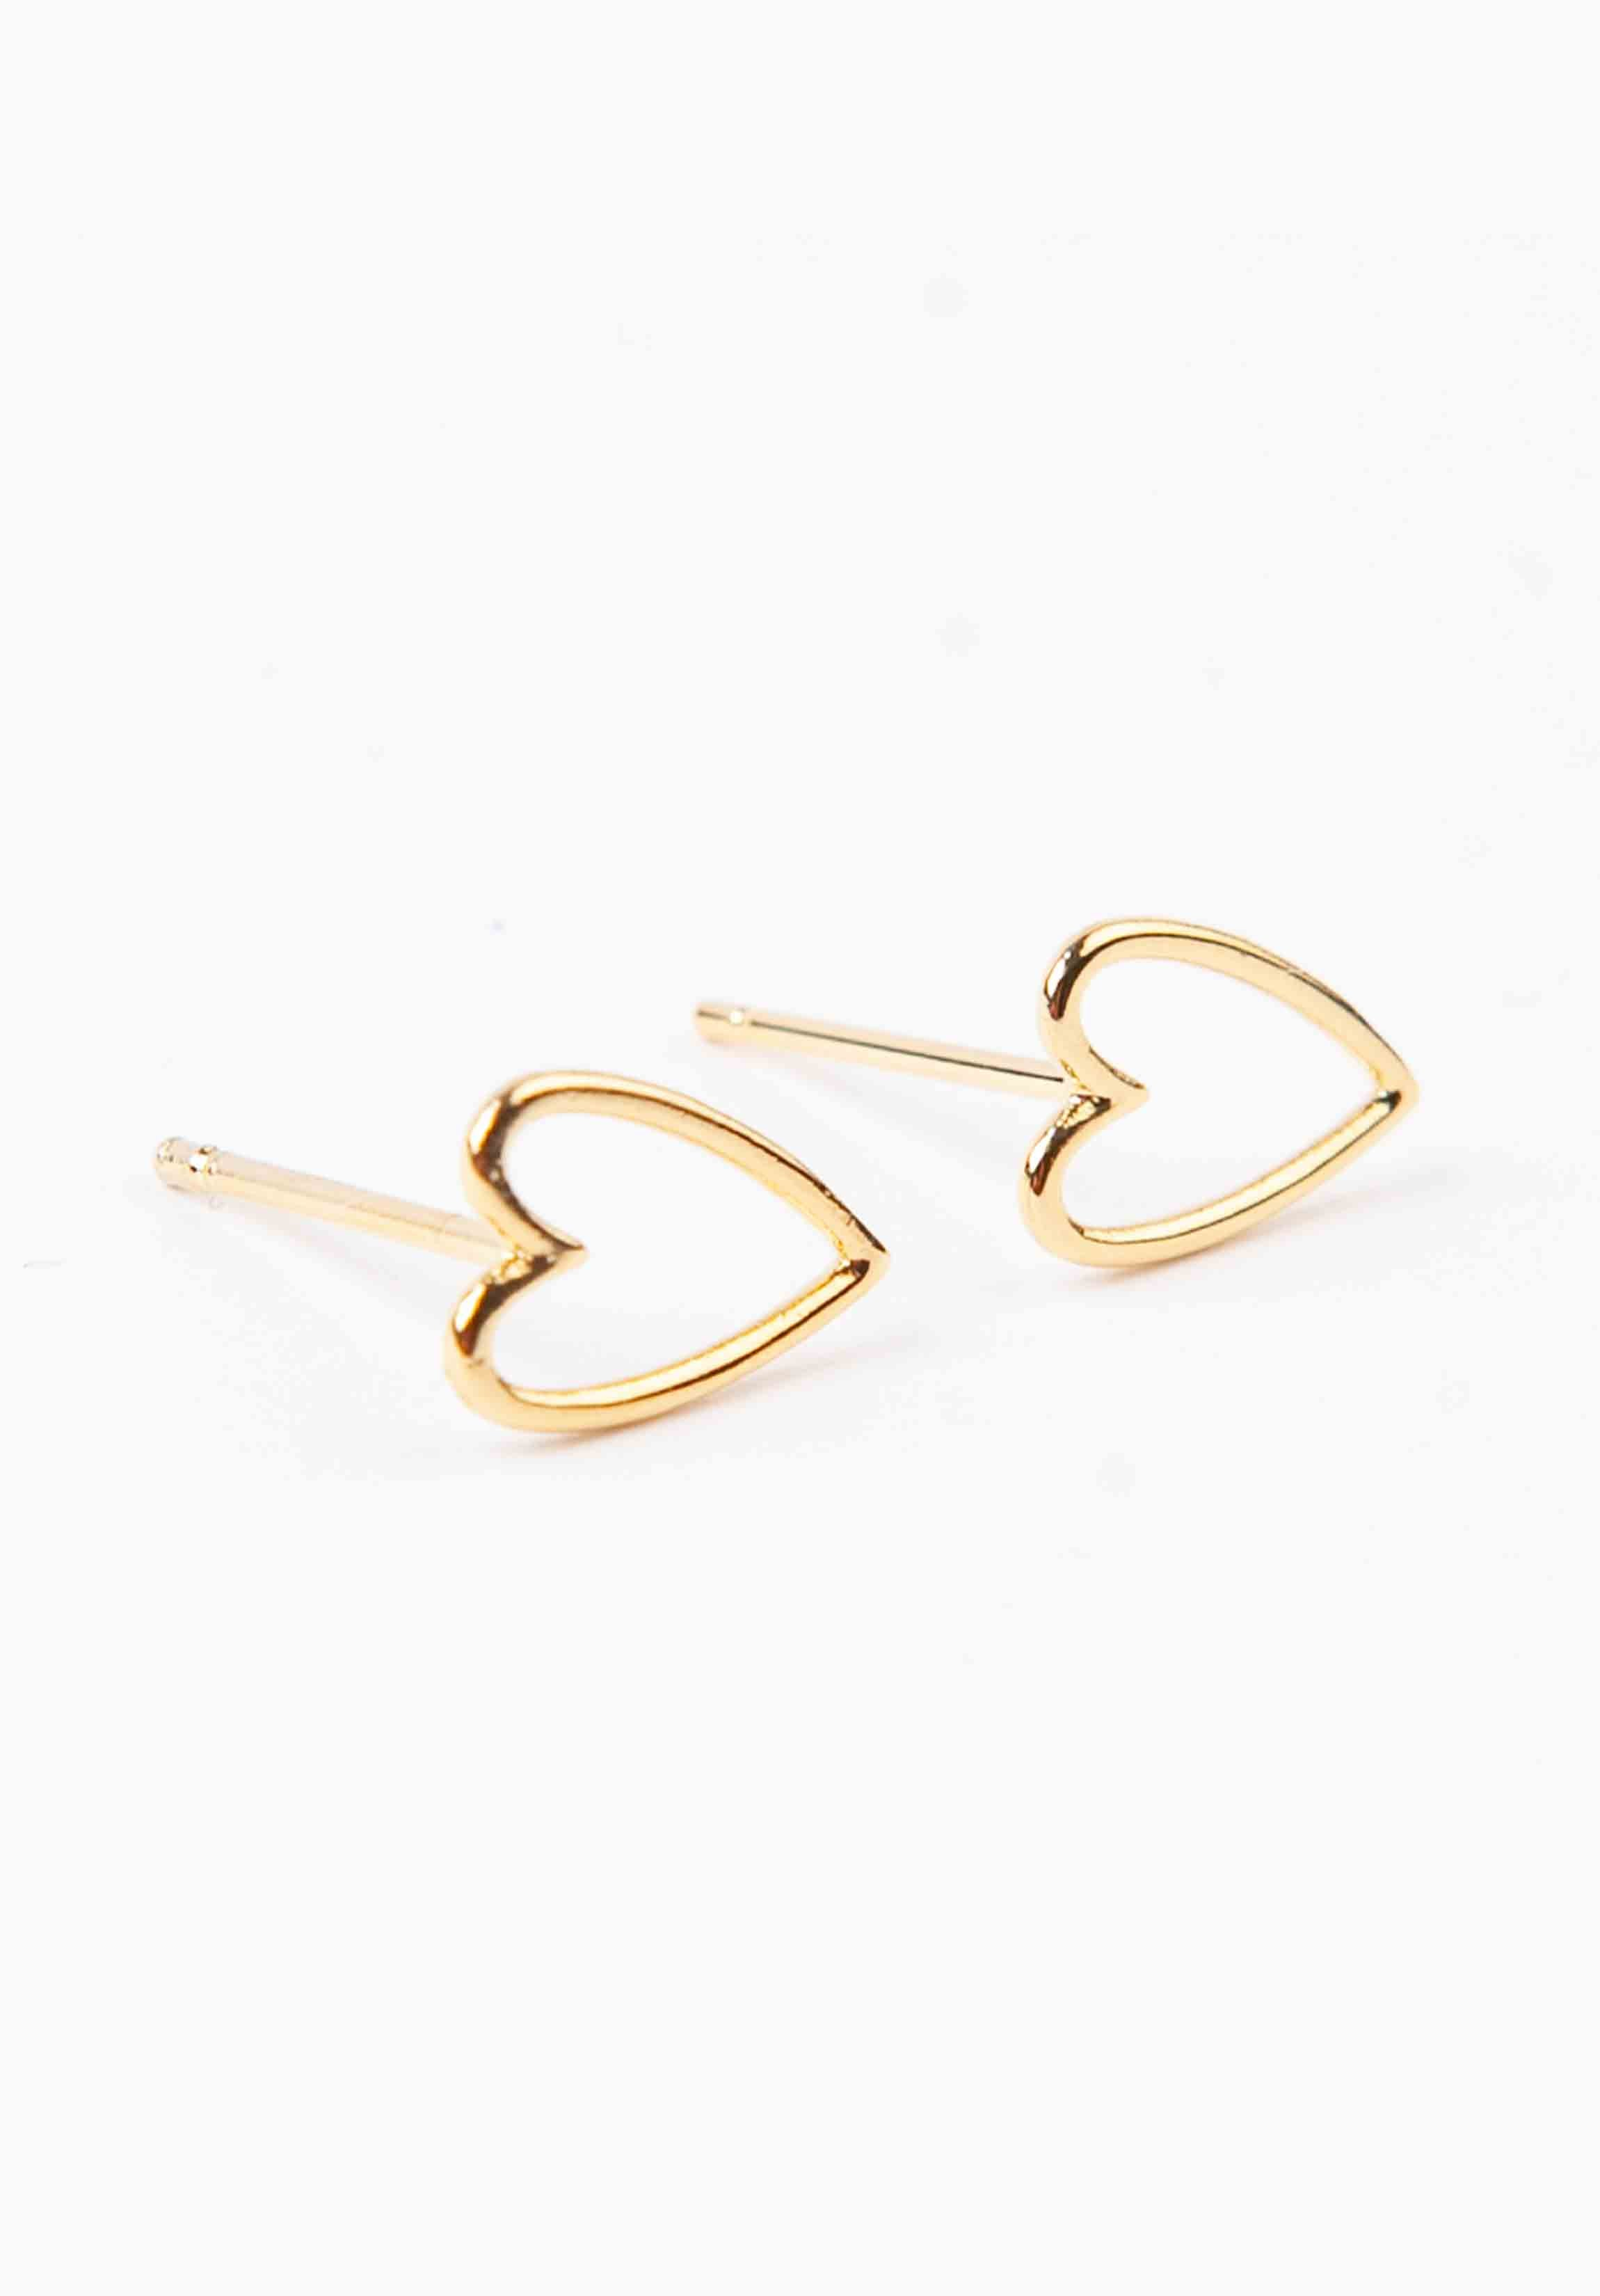 HEART OUTLINE EARRINGS | GOLD